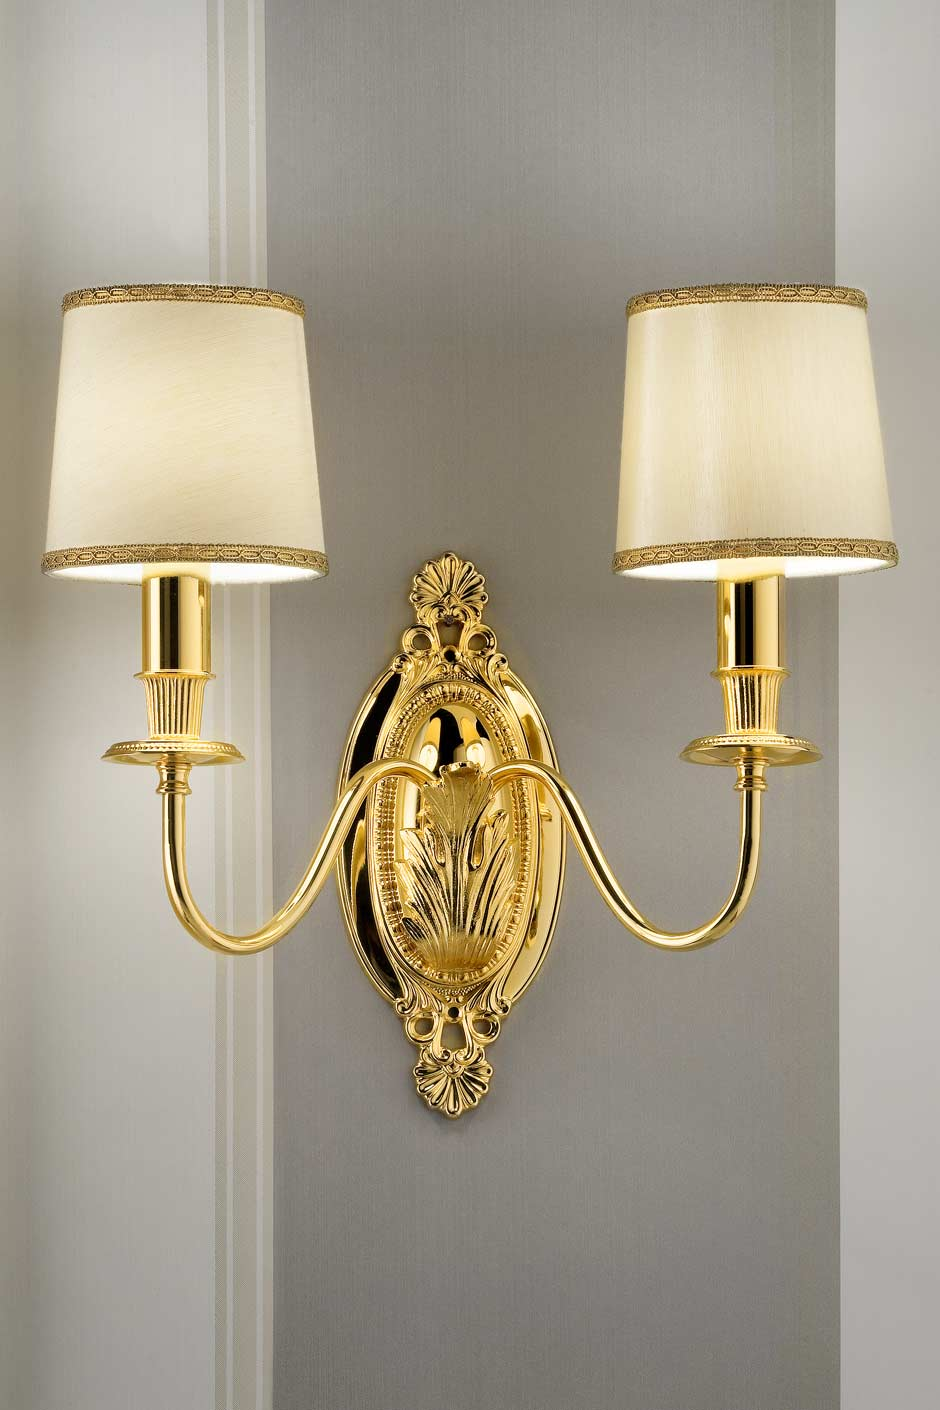 Silk Lamp Shades For Wall Lights : Double wall light in gold-plated bronze with beige silk shades Masiero Murano and crystal ...